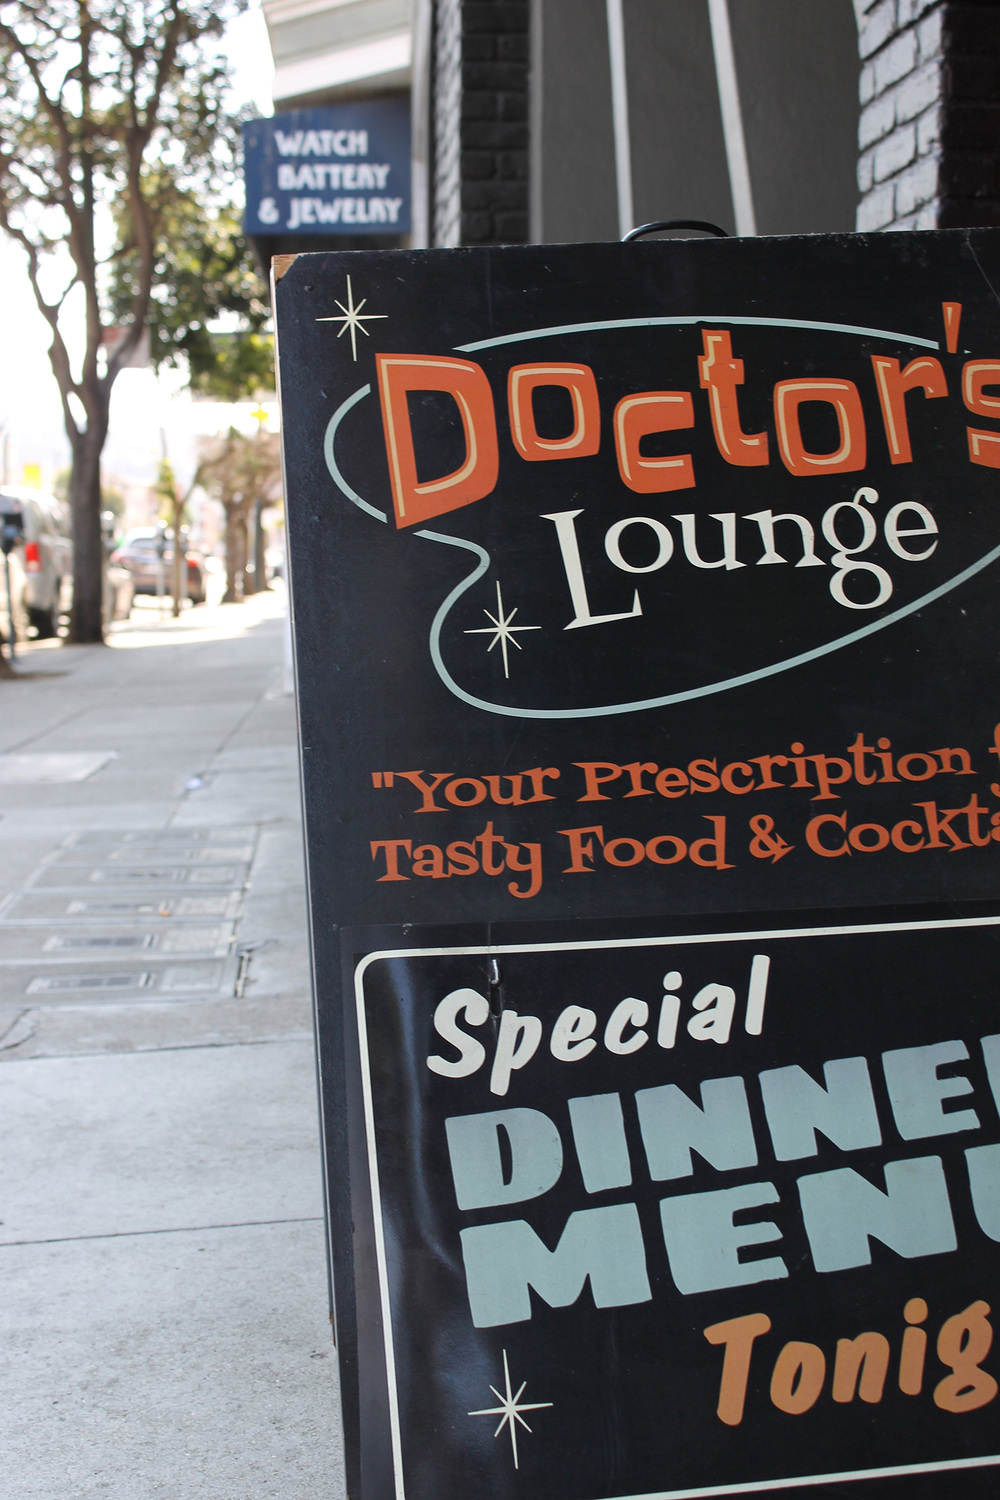 The Doctor's Remedy Brunch at Doctor's Lounge is a great cure for too much partying the night before.